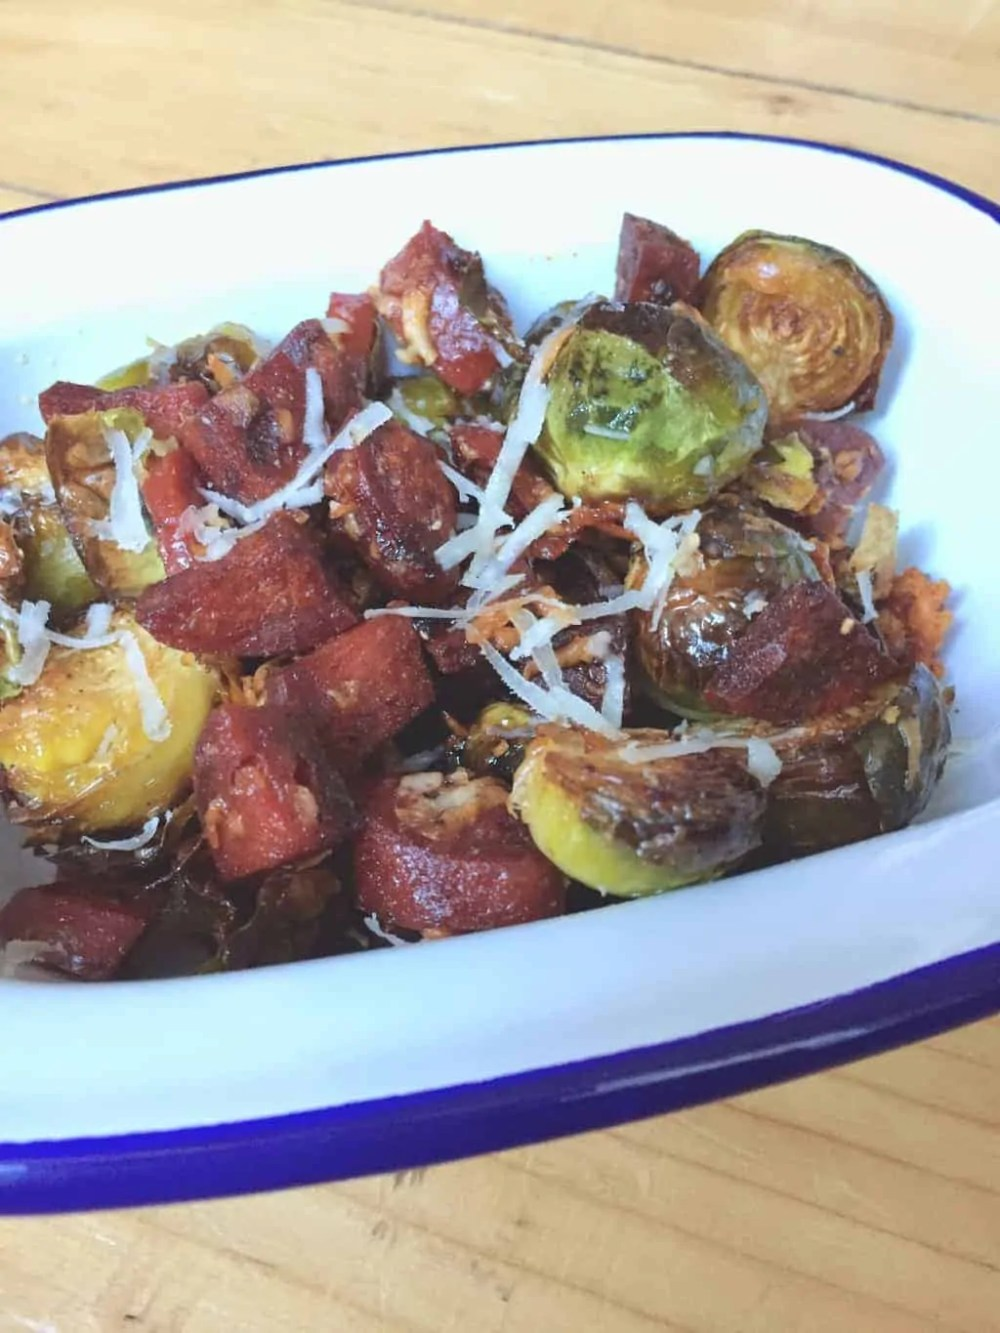 Roast brussel sprout